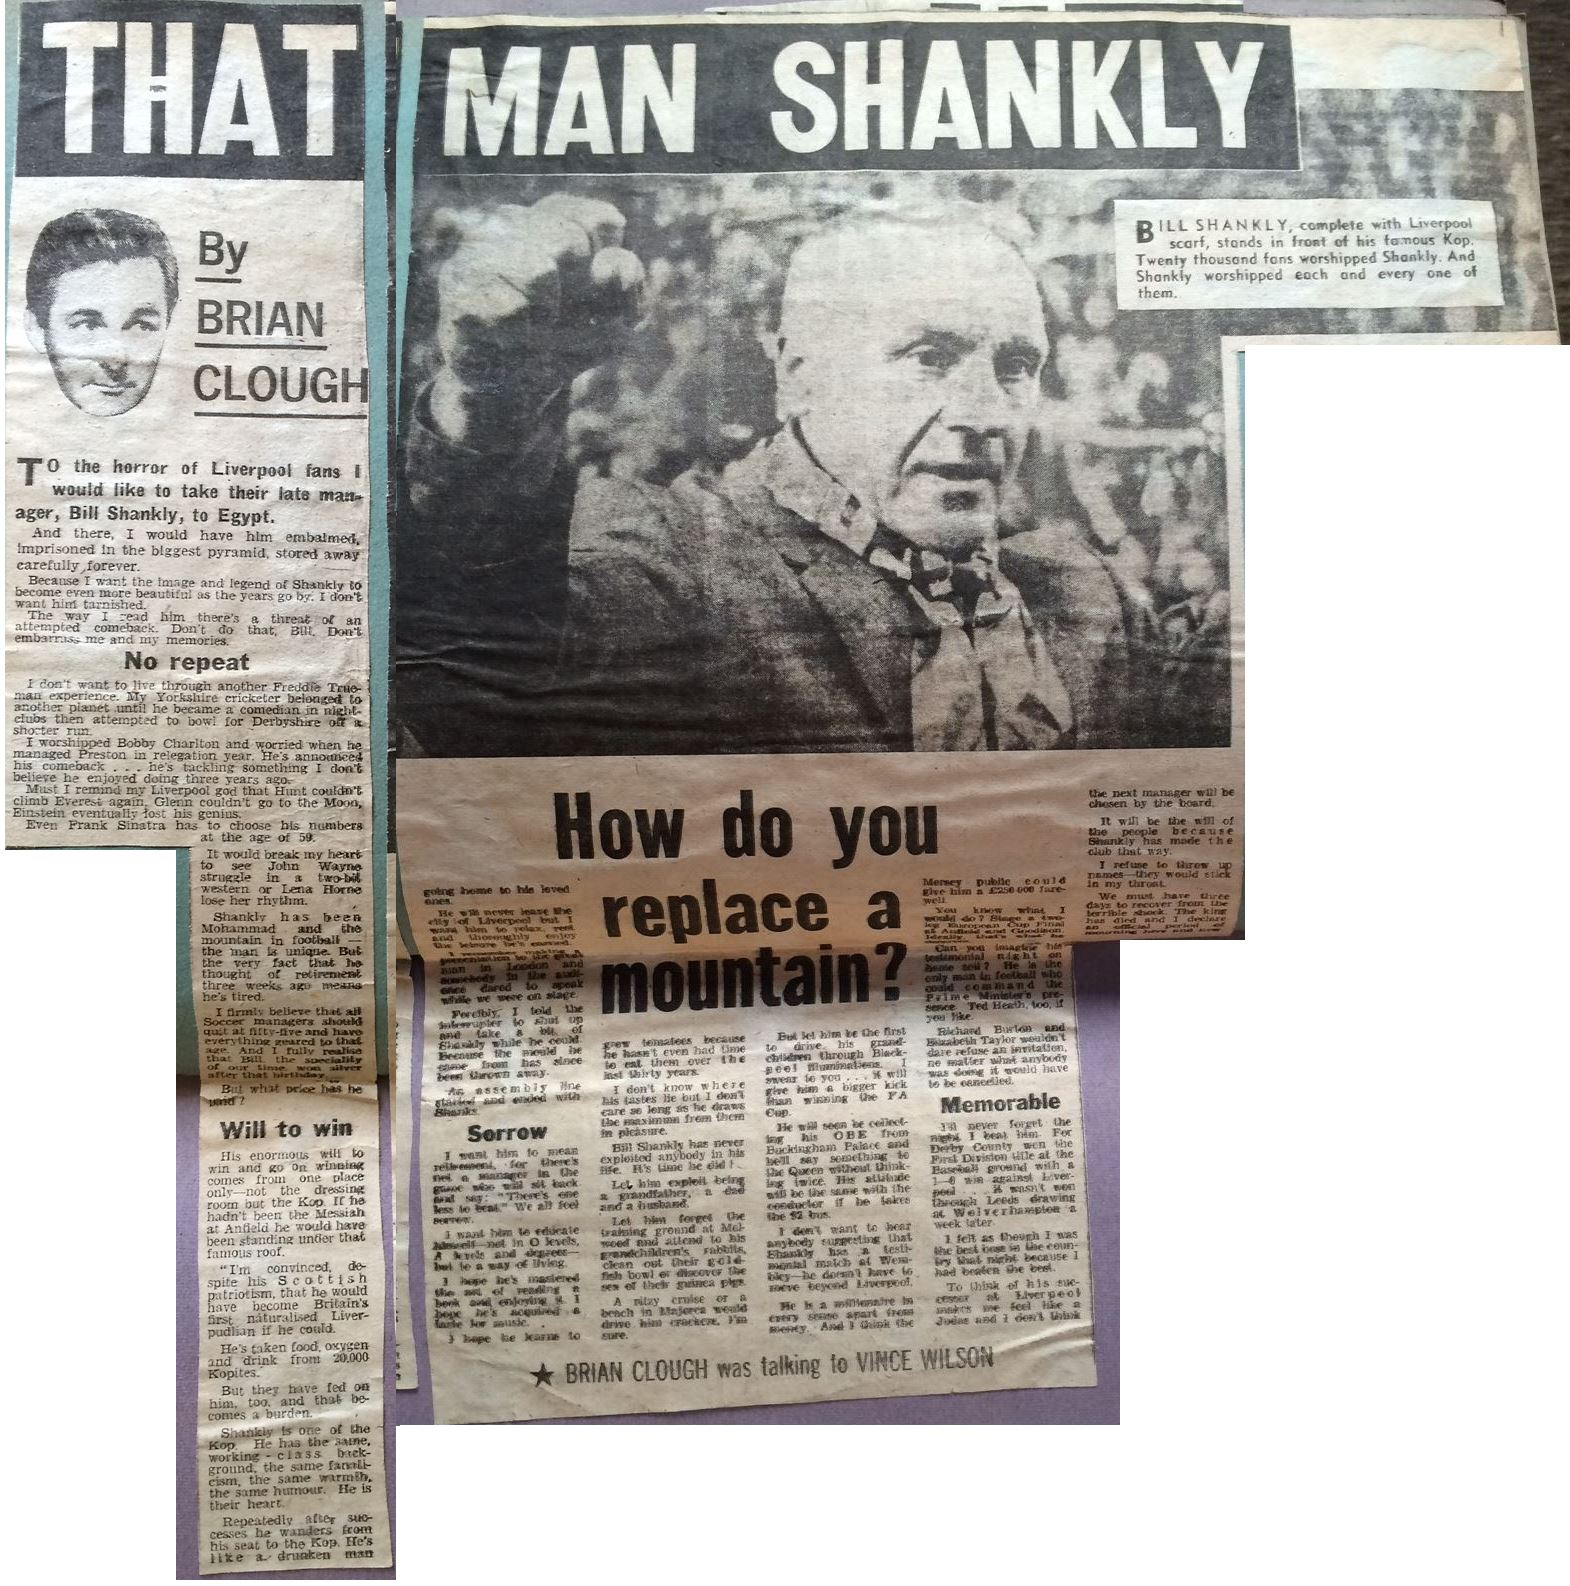 That man Shankly, by Brian Clough - July 1974